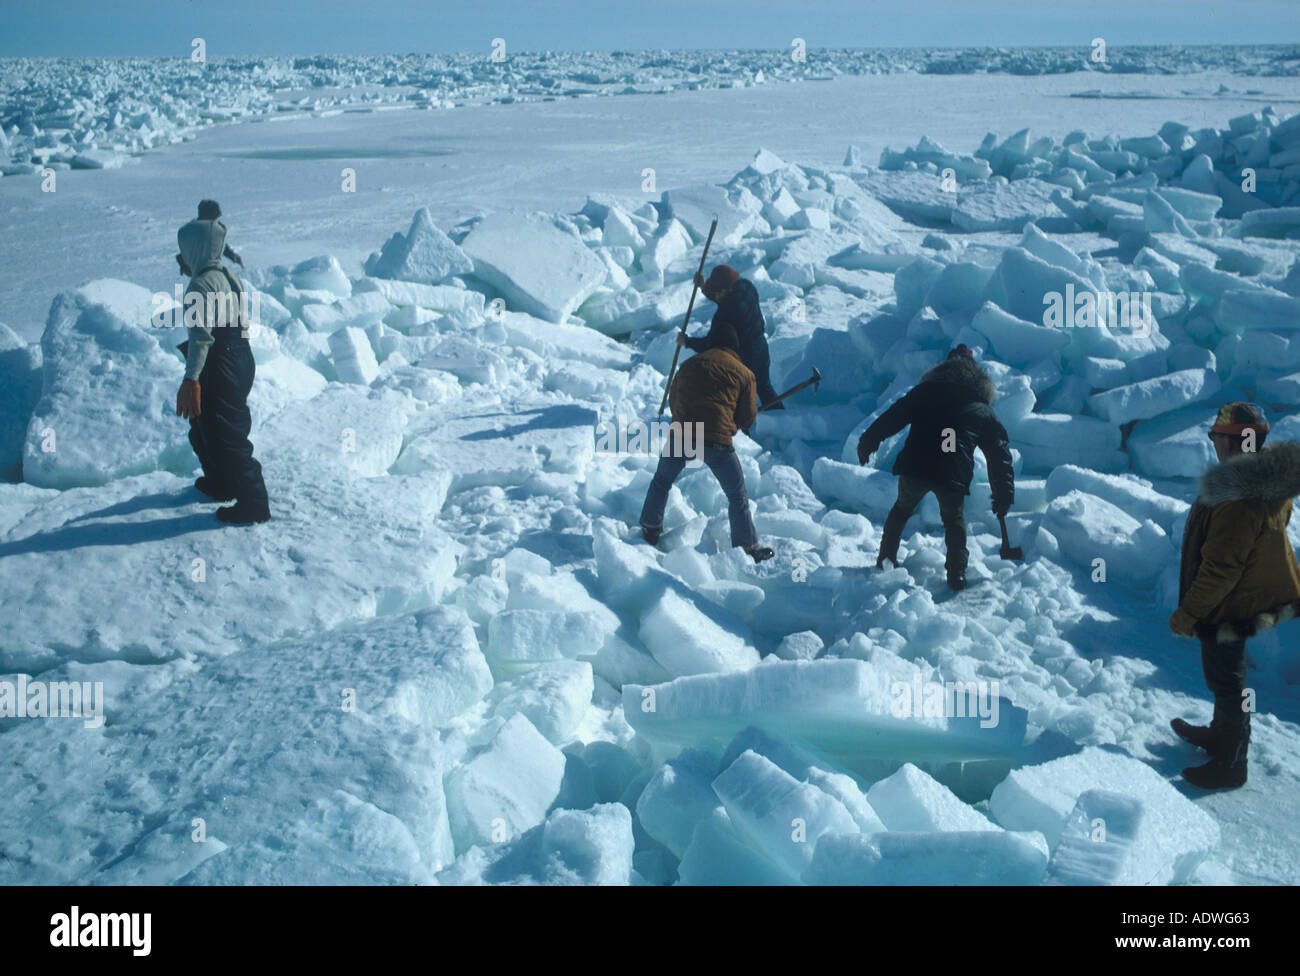 arctic people inuit eskimo people cut pathway in pressure ice to get